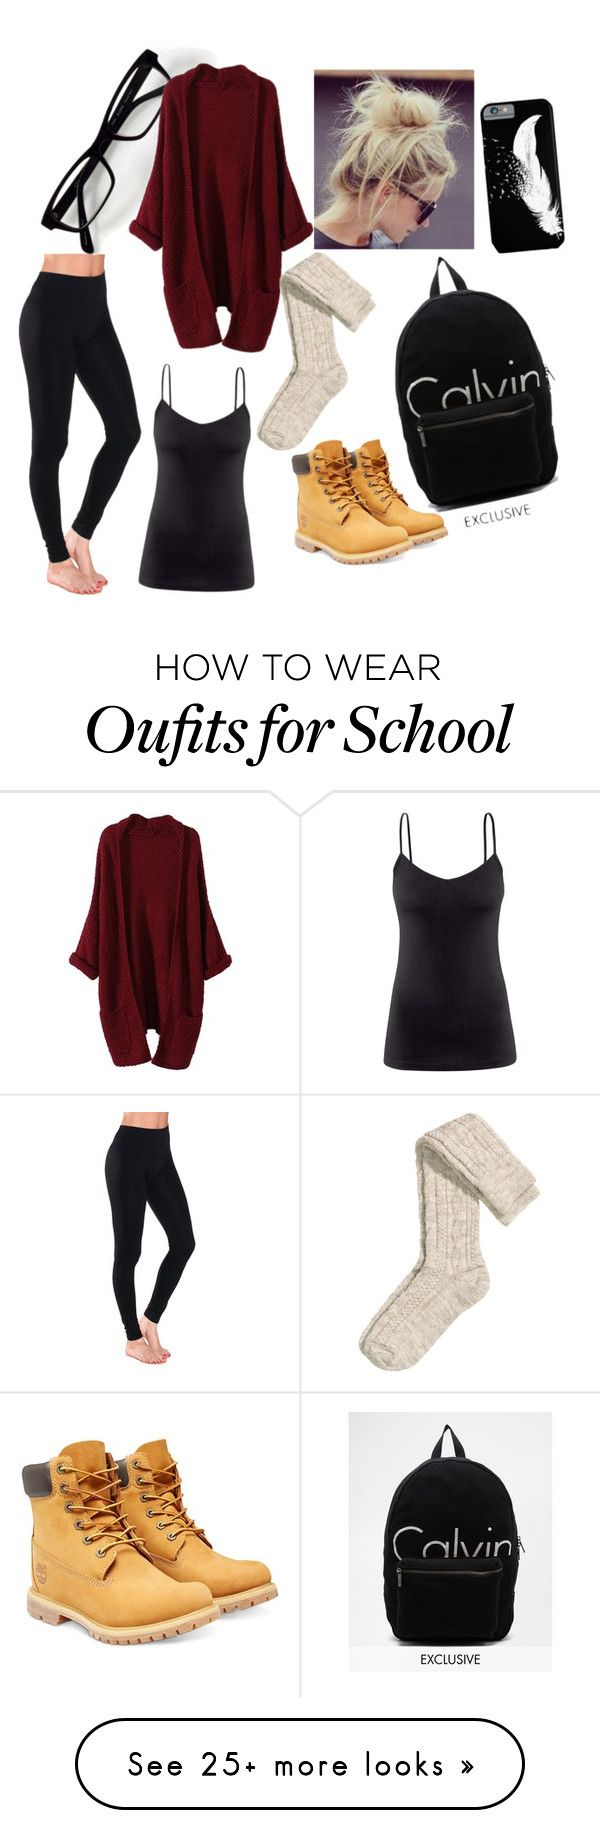 School by itsmadisonsmith on Polyvore featuring HM, Timberland and Calvin Klein Clothing, Shoes & Jewelry - Women - Shoes - women's shoes - http://amzn.to/2jttl6P